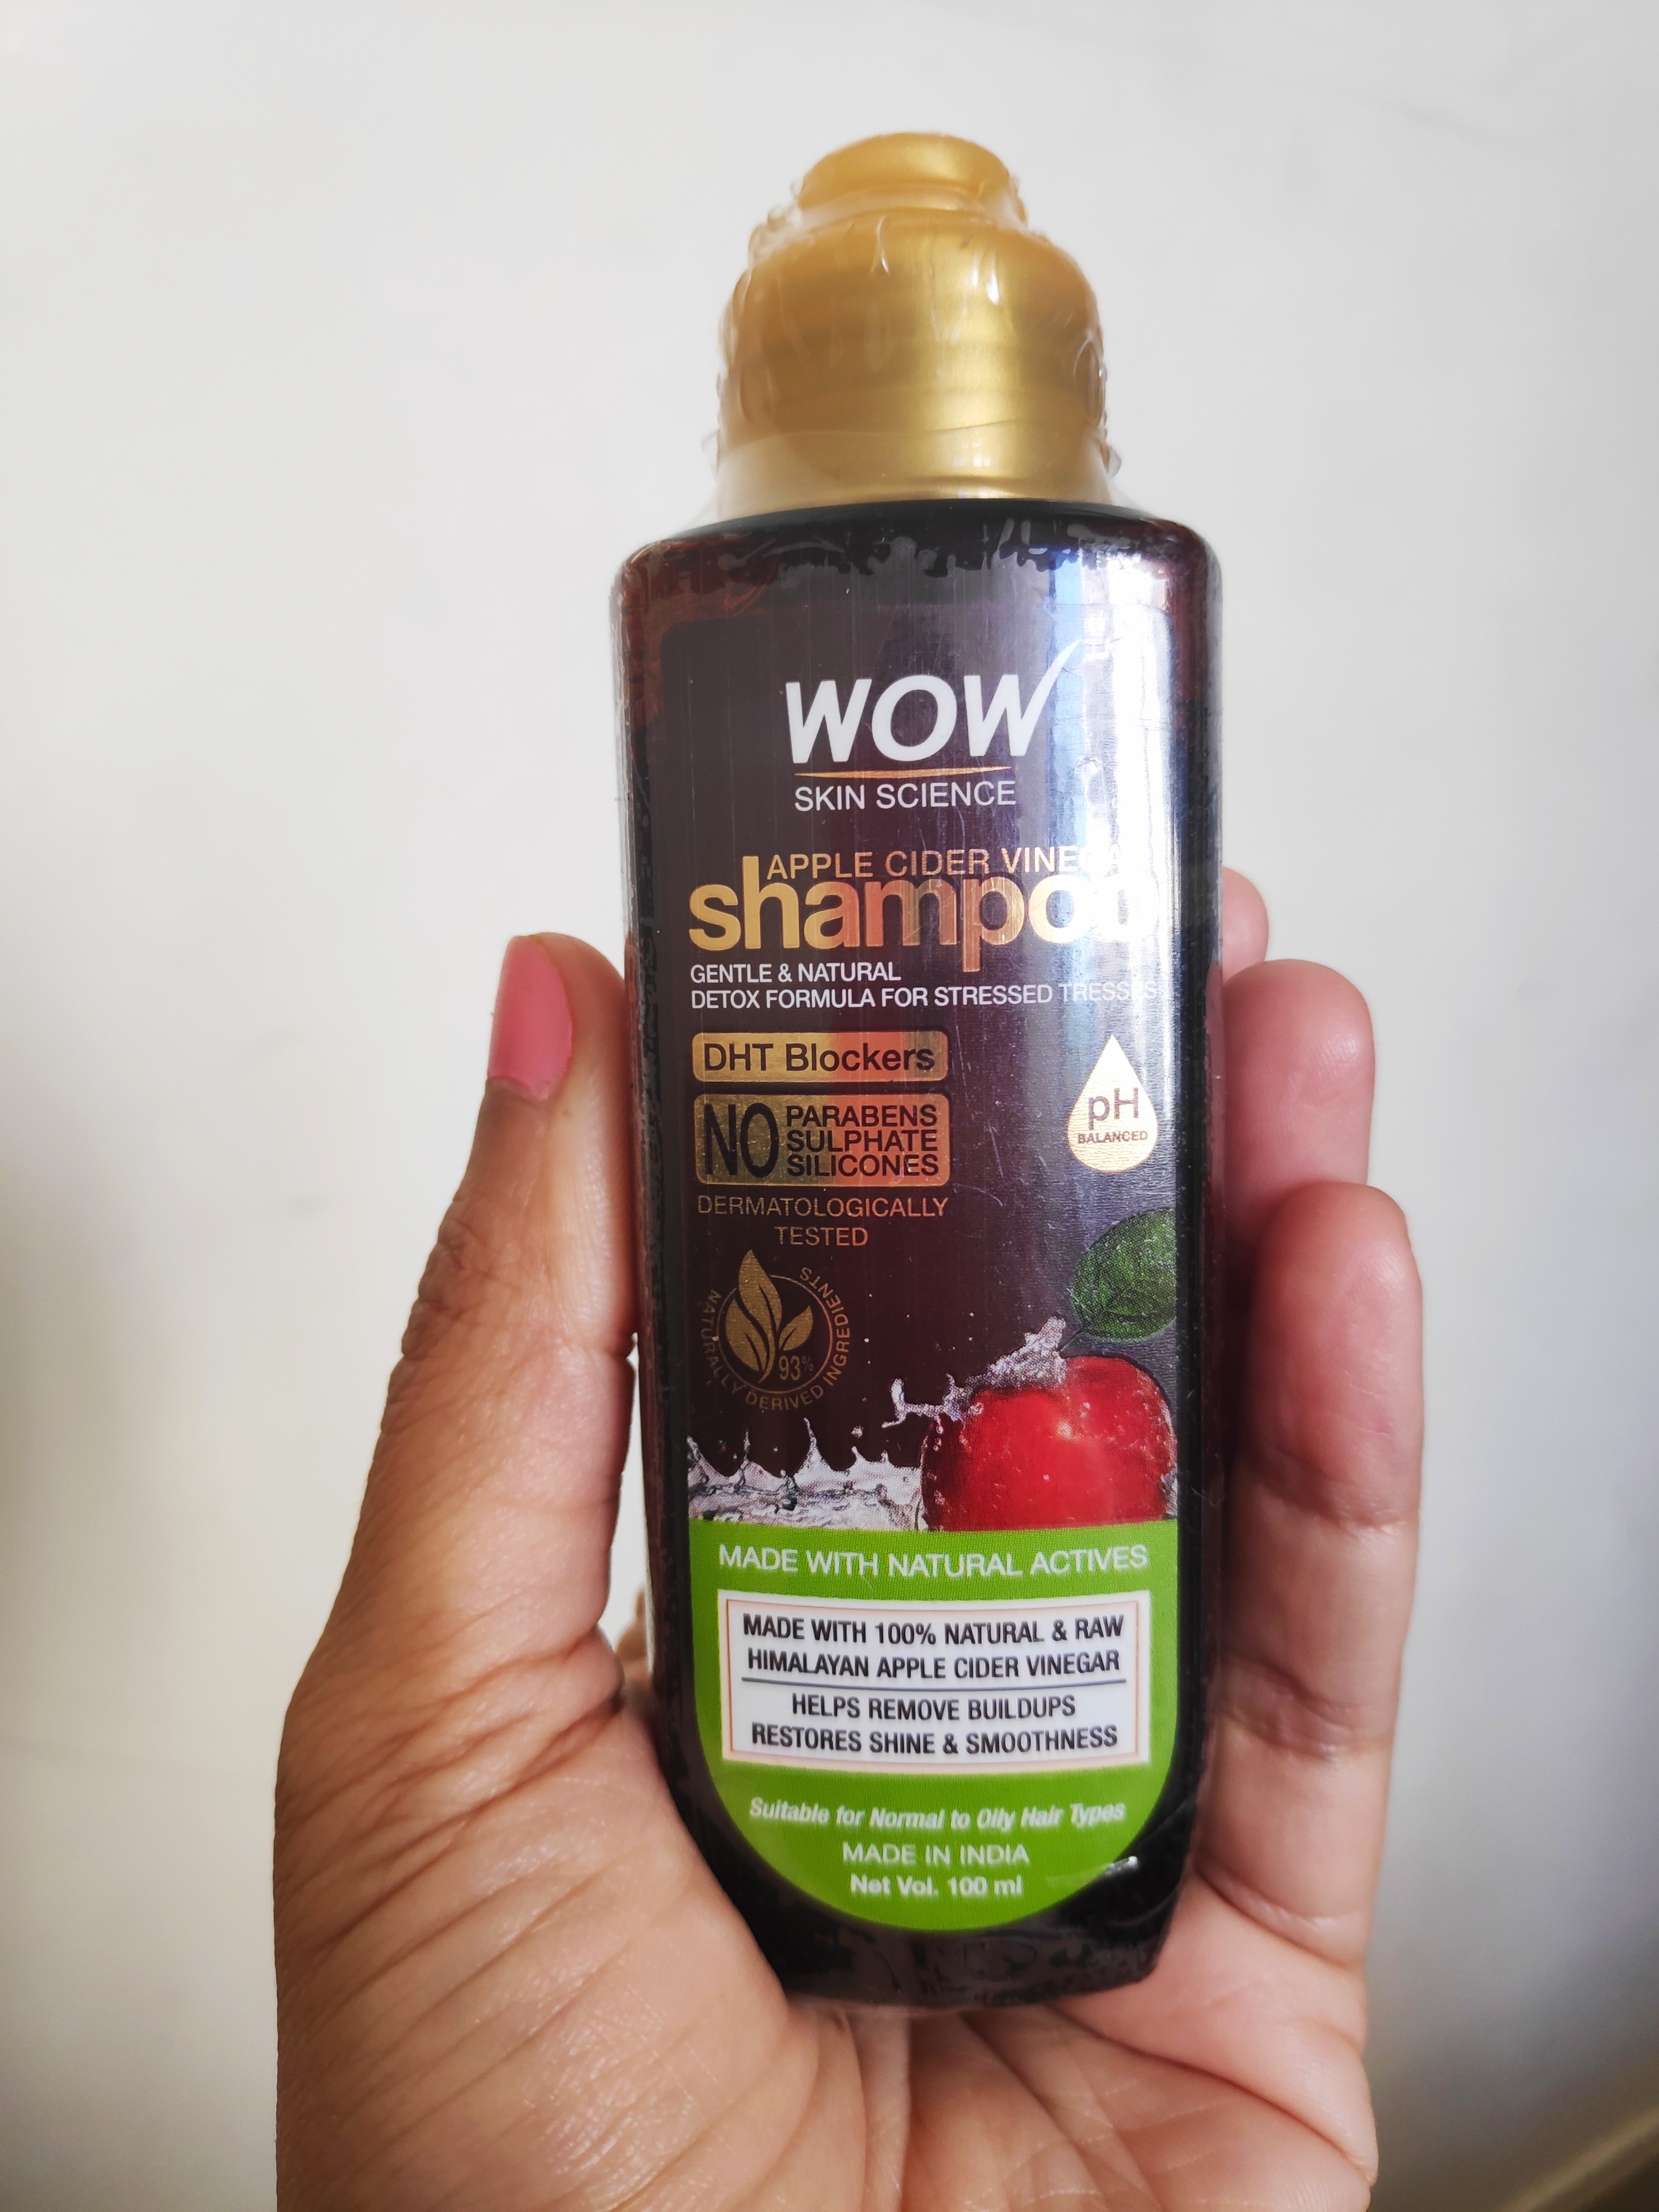 WOW Skin Science Apple Cider Vinegar Shampoo – No Parabens & Sulphate – 300 ml pic 1-Perfect detox solution for dull stressed hair-By specta_kidmumma